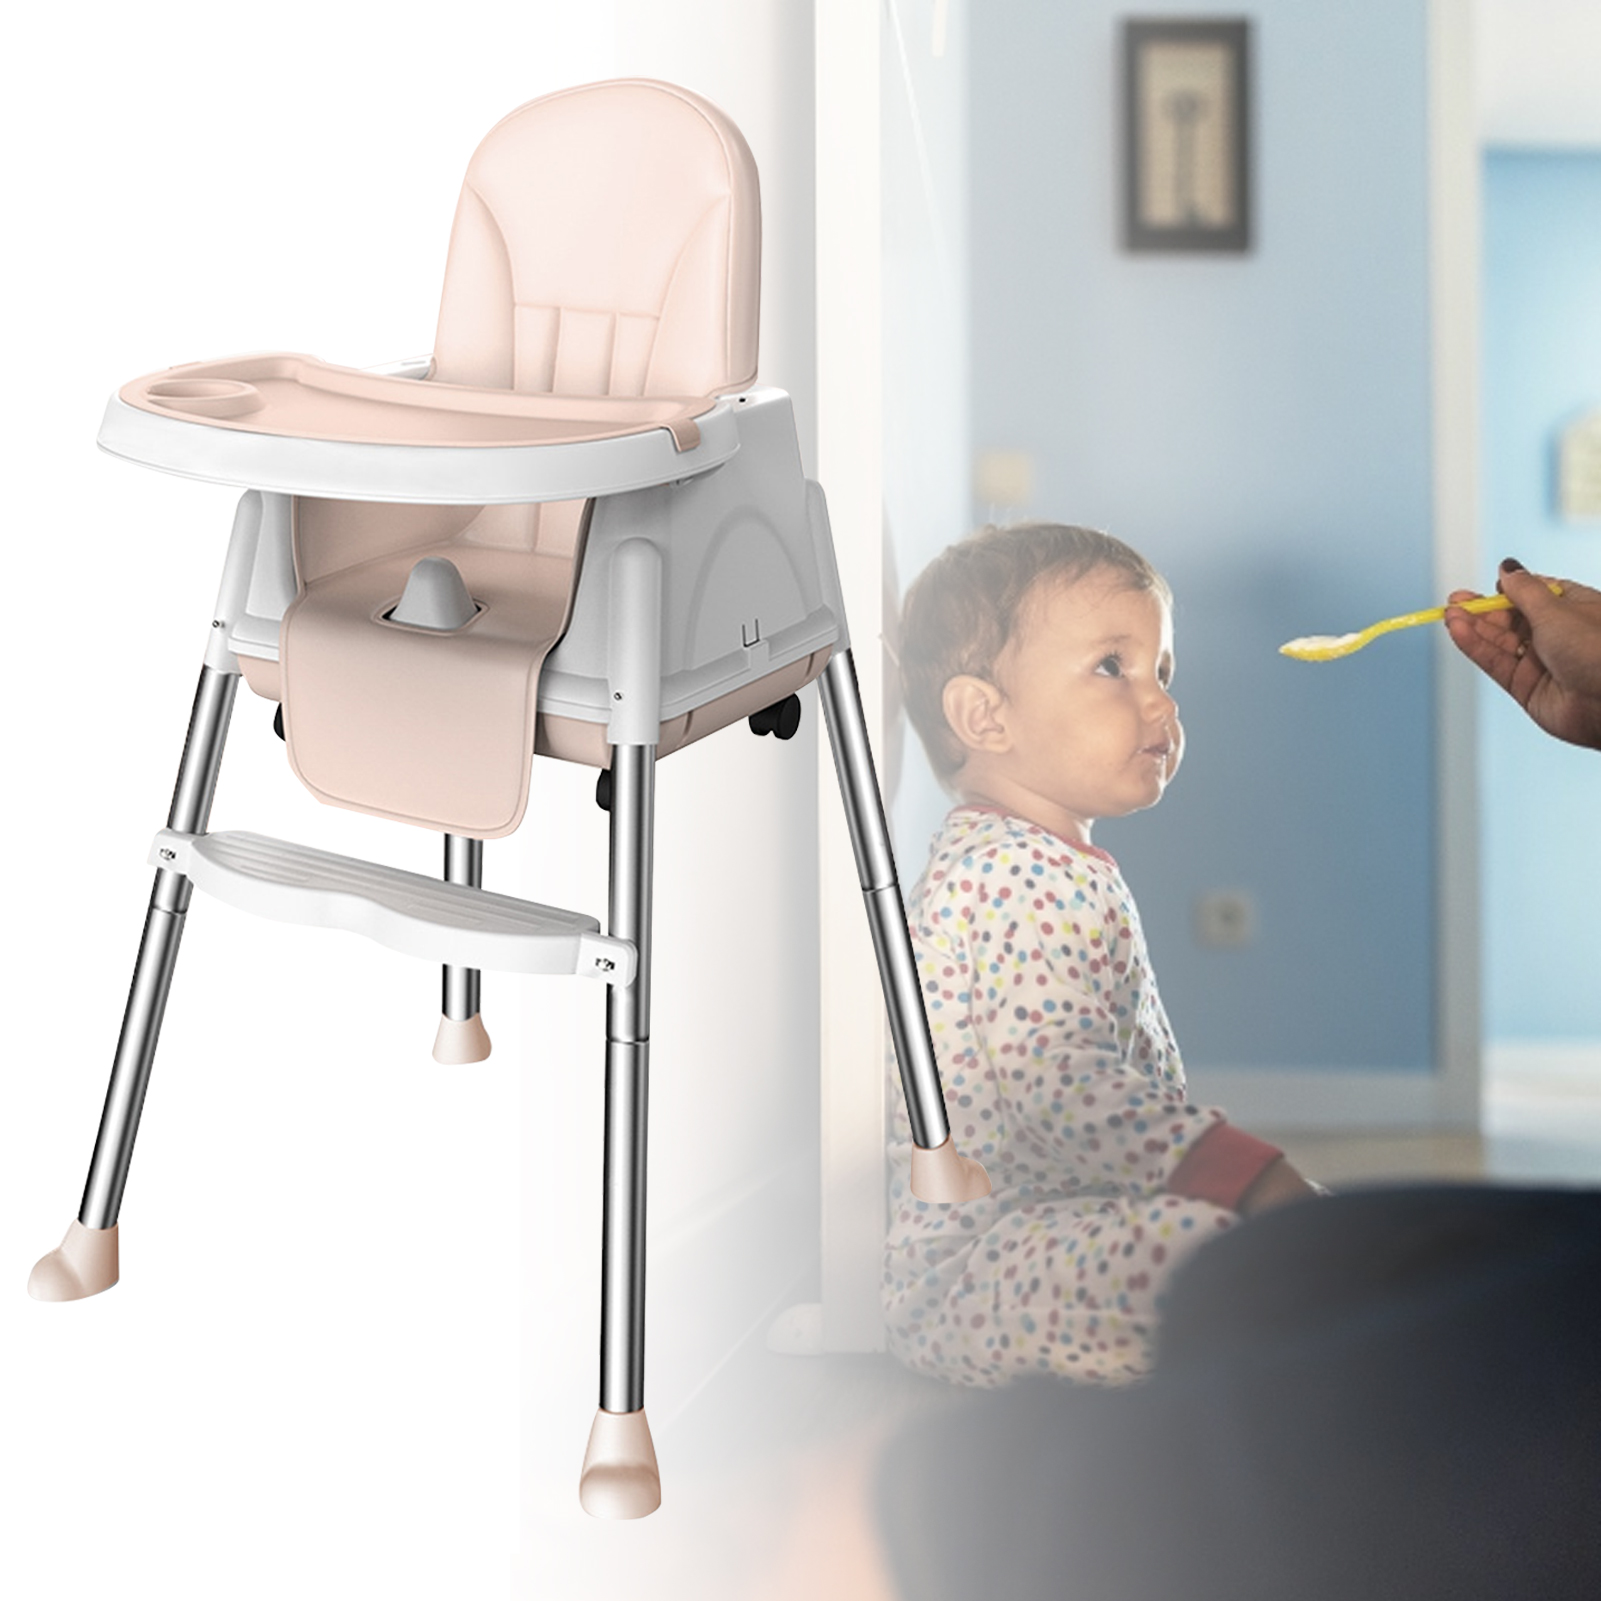 Multifunctional Portable Baby High Chair Adjustable Baby Kids Safety Dining High Chair Booster With Seat Wheels Cushion